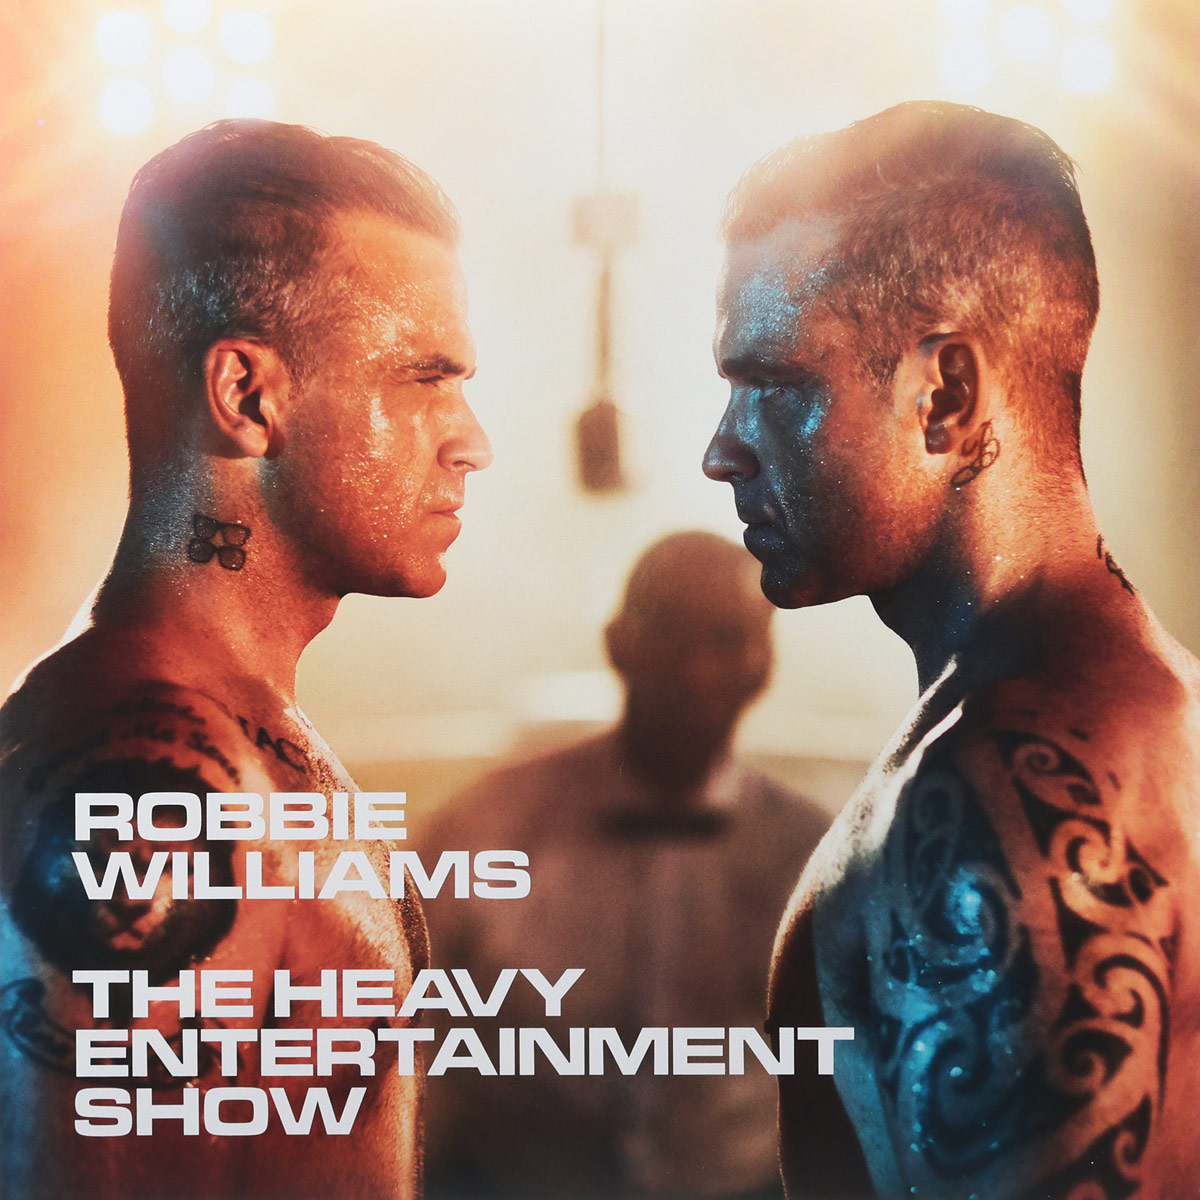 Робби Уильямс Robbie Williams. Heavy Entertainment Show (2 LP) robbie williams robbie williams swings both ways 2 lp